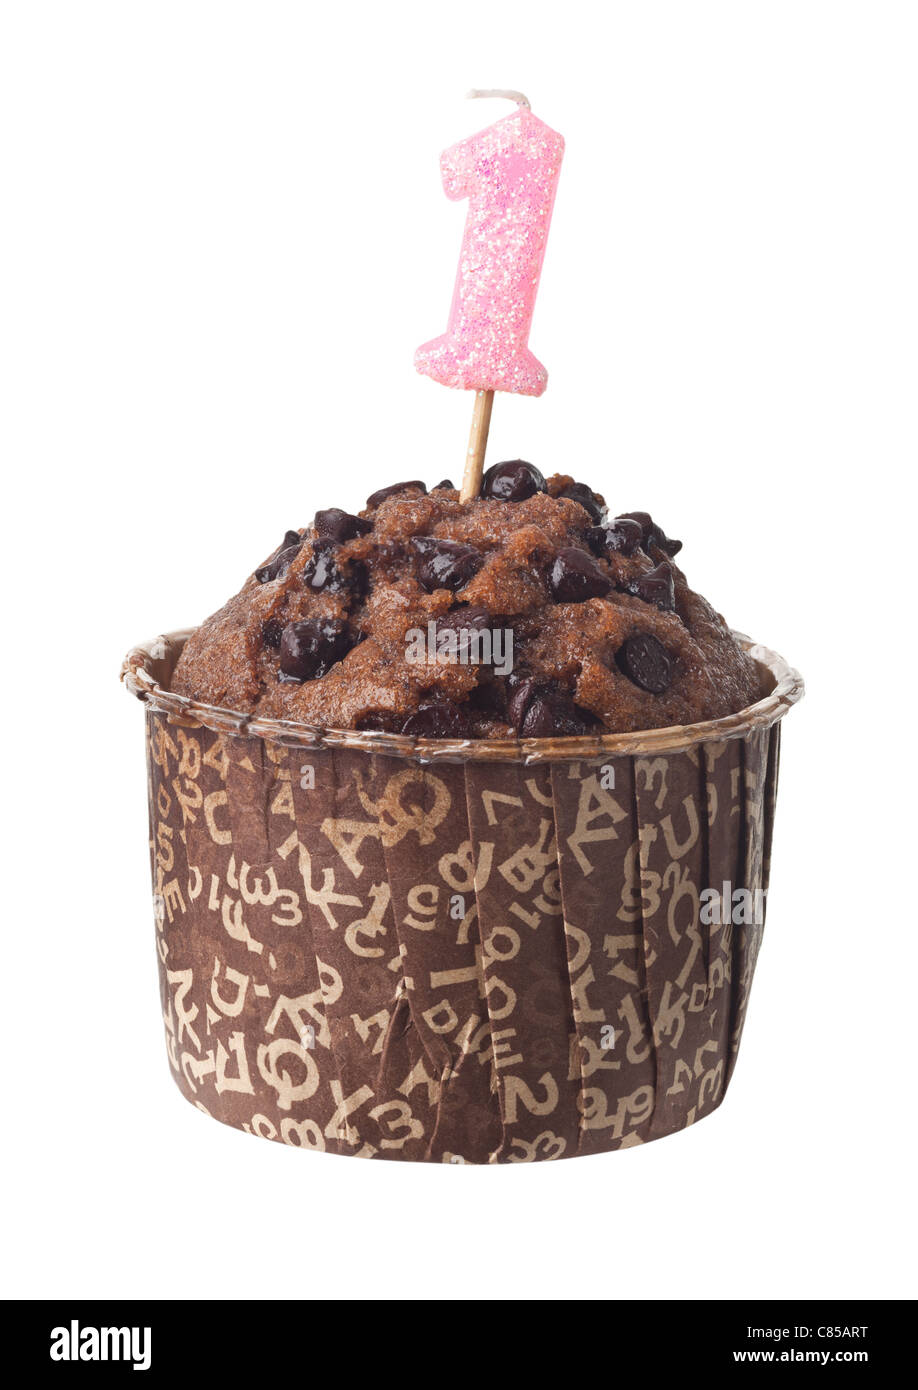 Chocolate Muffin With Birthday Candle For One Year Old Isolated On White Background